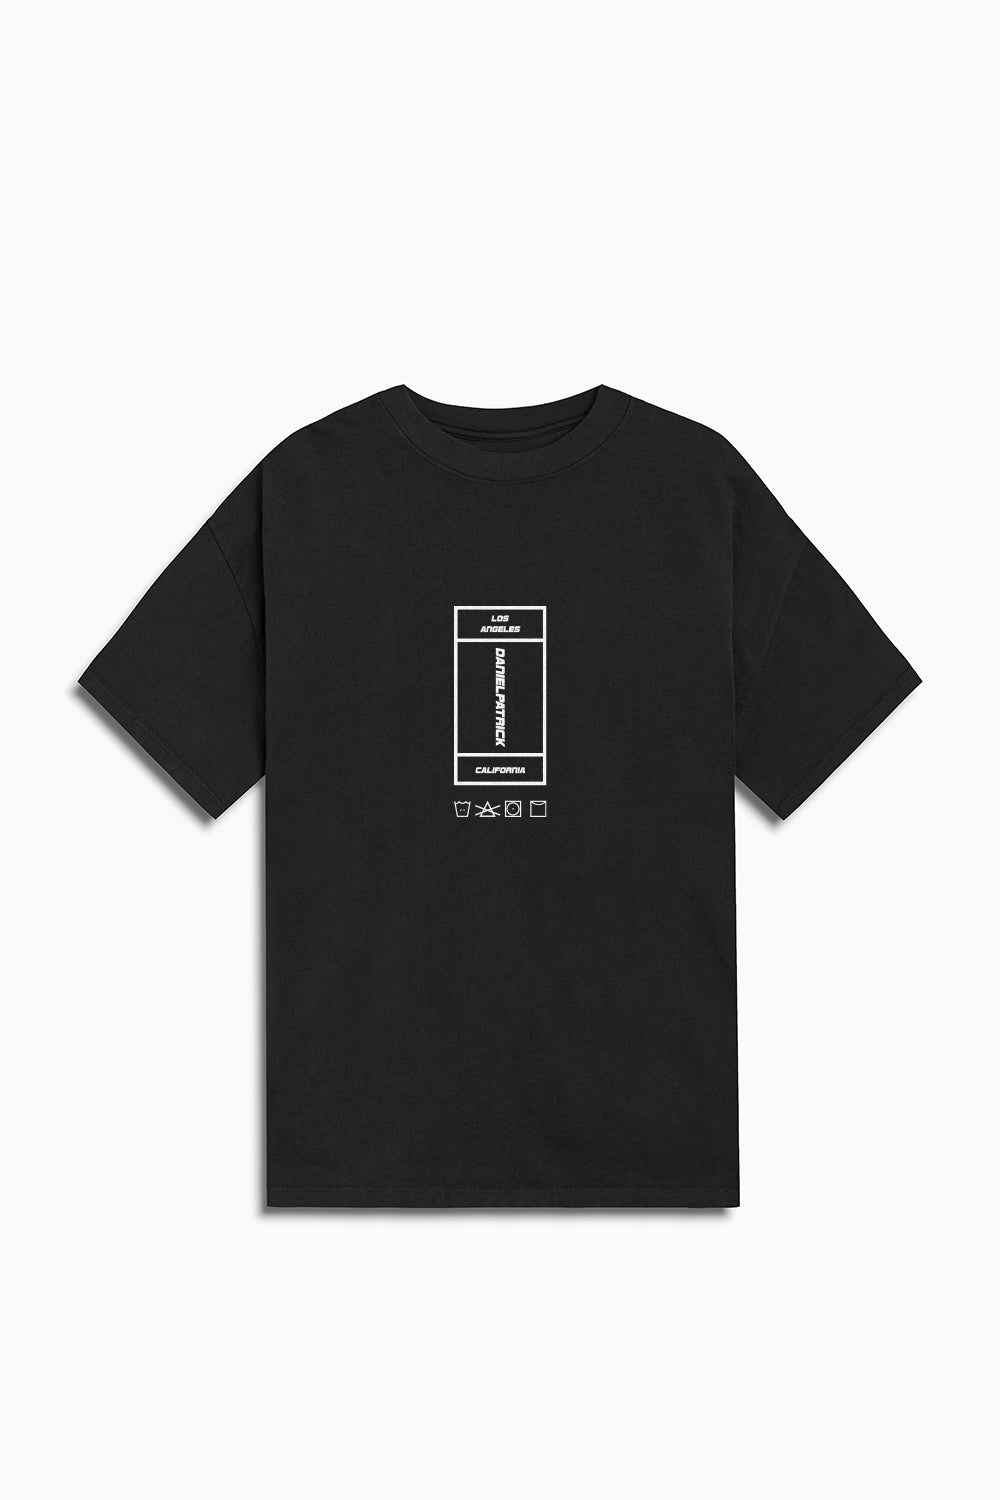 vertical rectangle tee / washed black